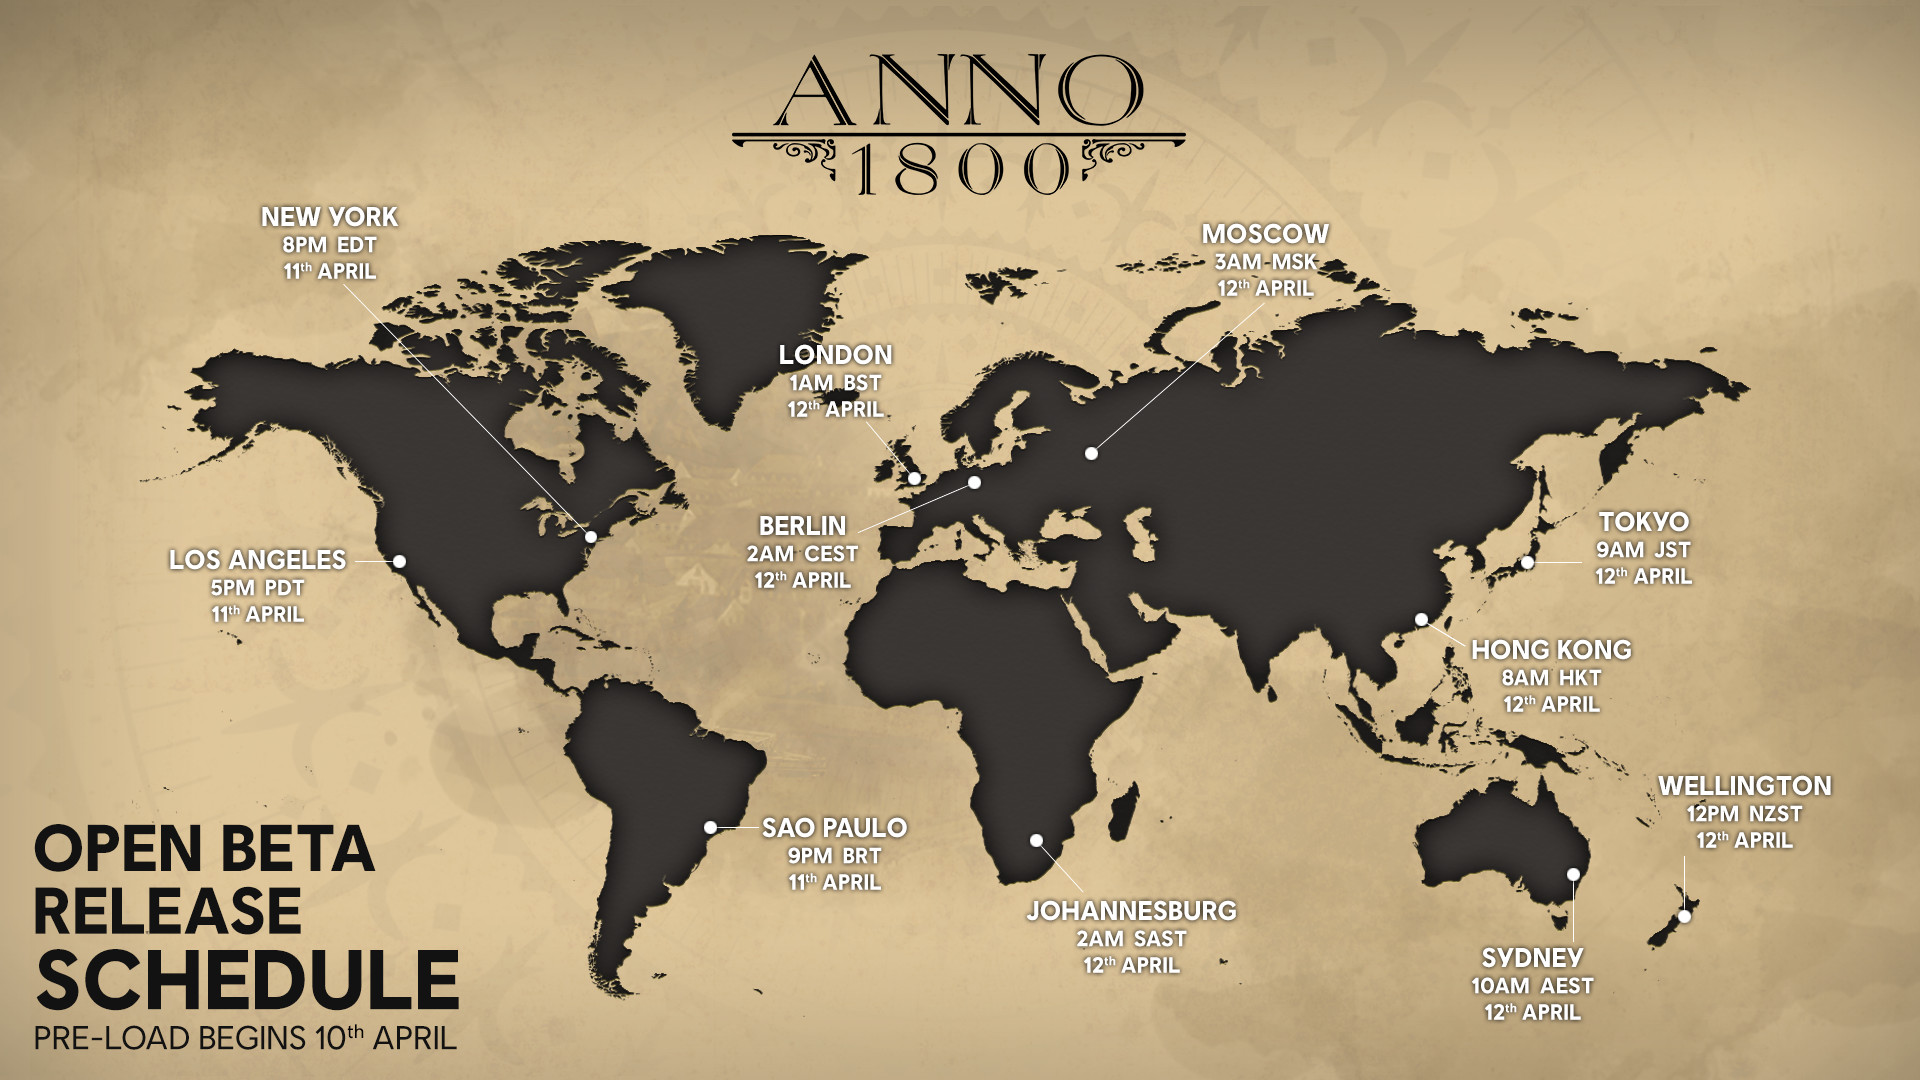 Preloading for the Anno 1800 open beta starts today, final system